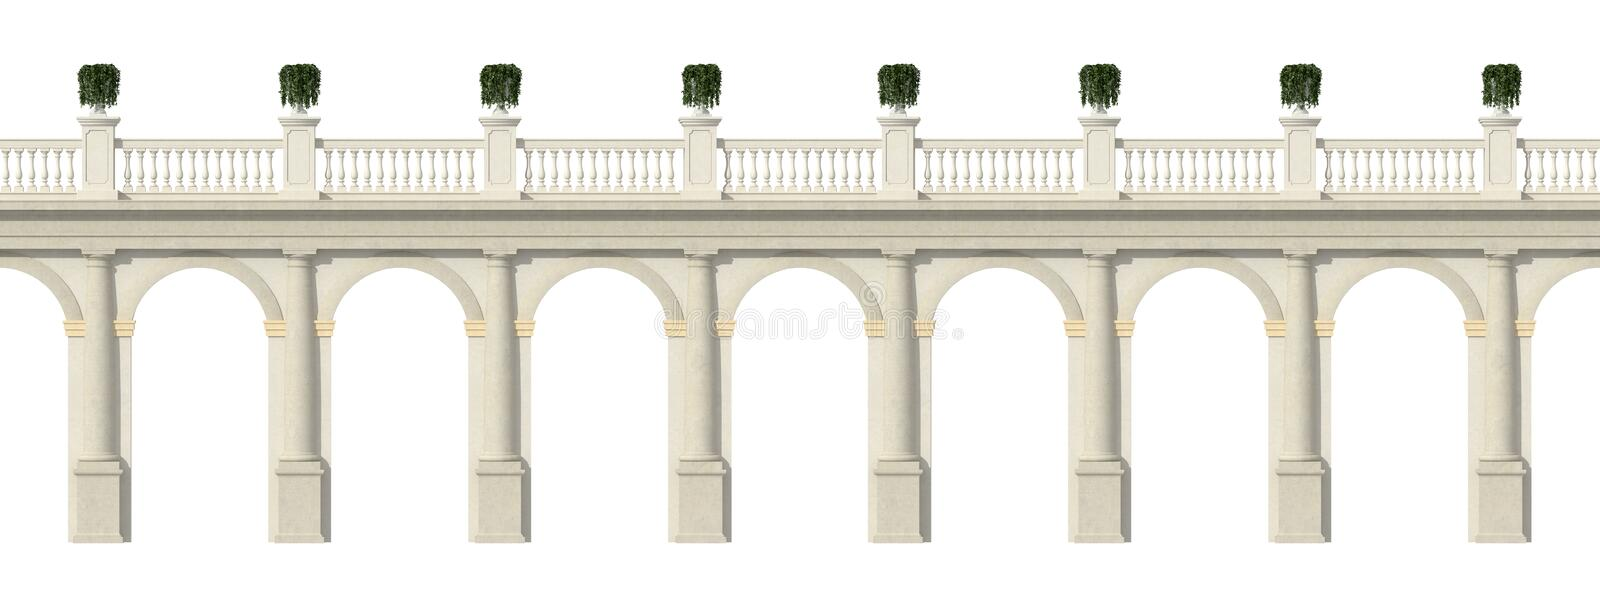 Tuscany colonnade isolated on white. Tuscany colonnade with arches and balustrade isolate on white- rendering stock illustration